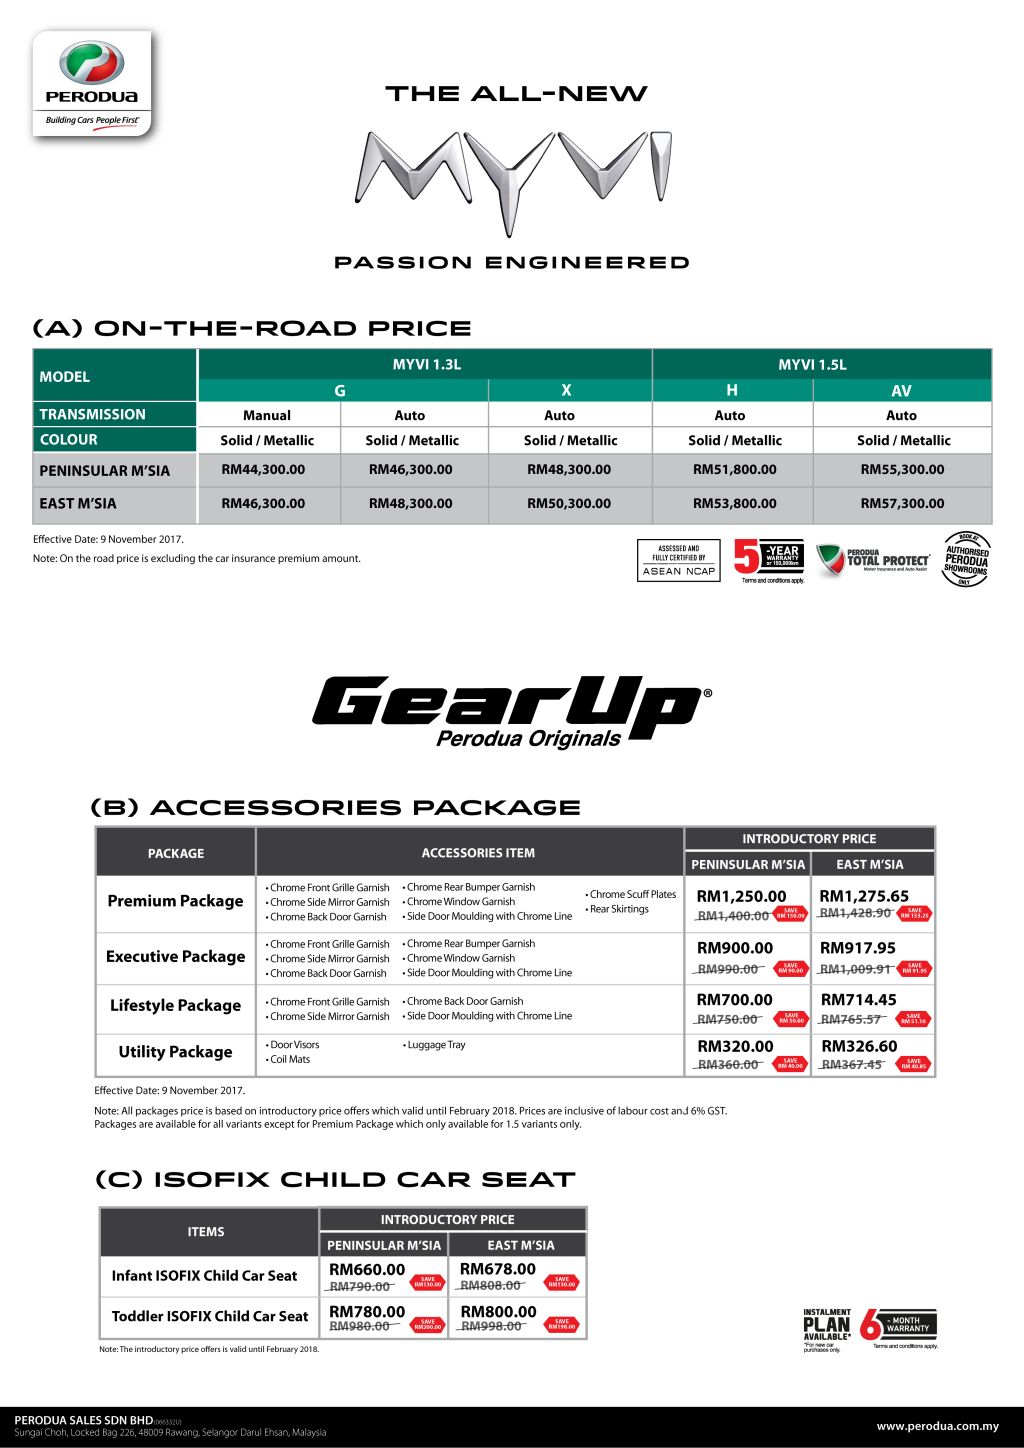 Pricelist_The-All-New-Myvi